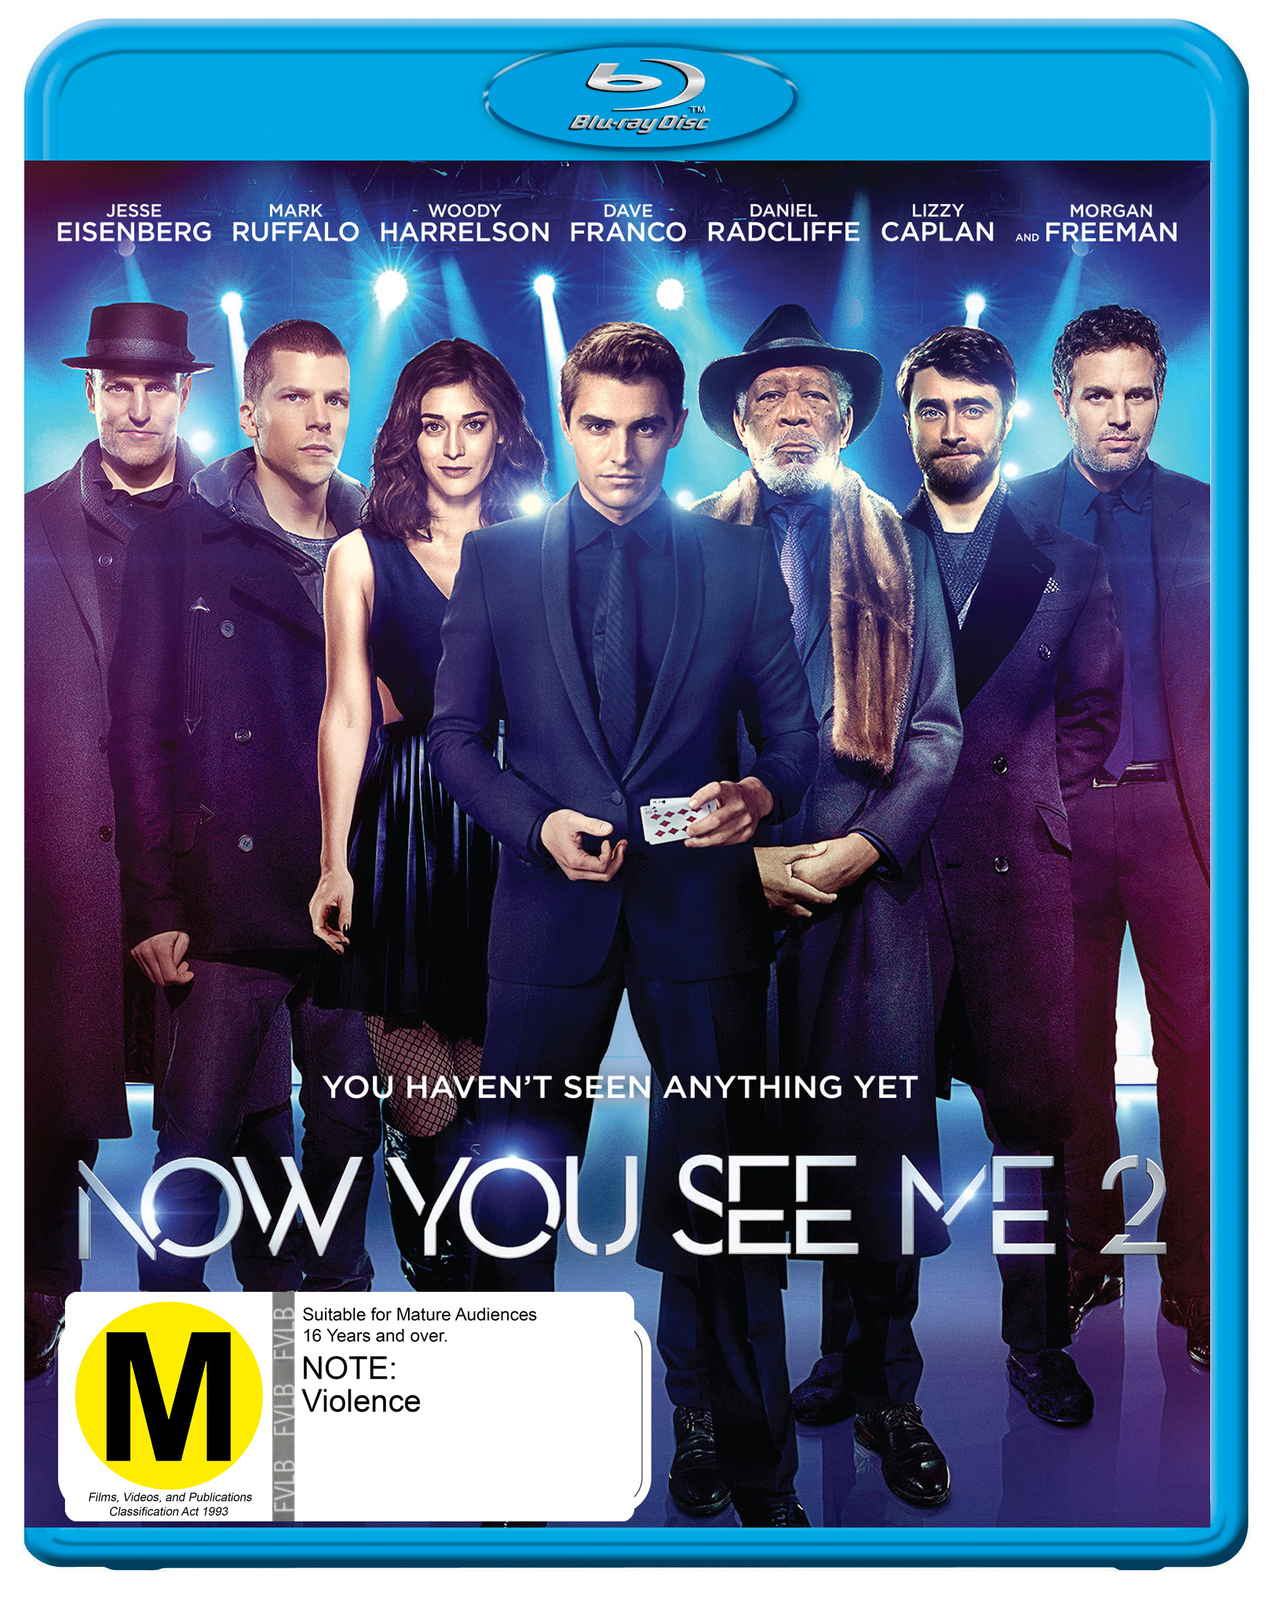 Now You See Me 2 on Blu-ray image